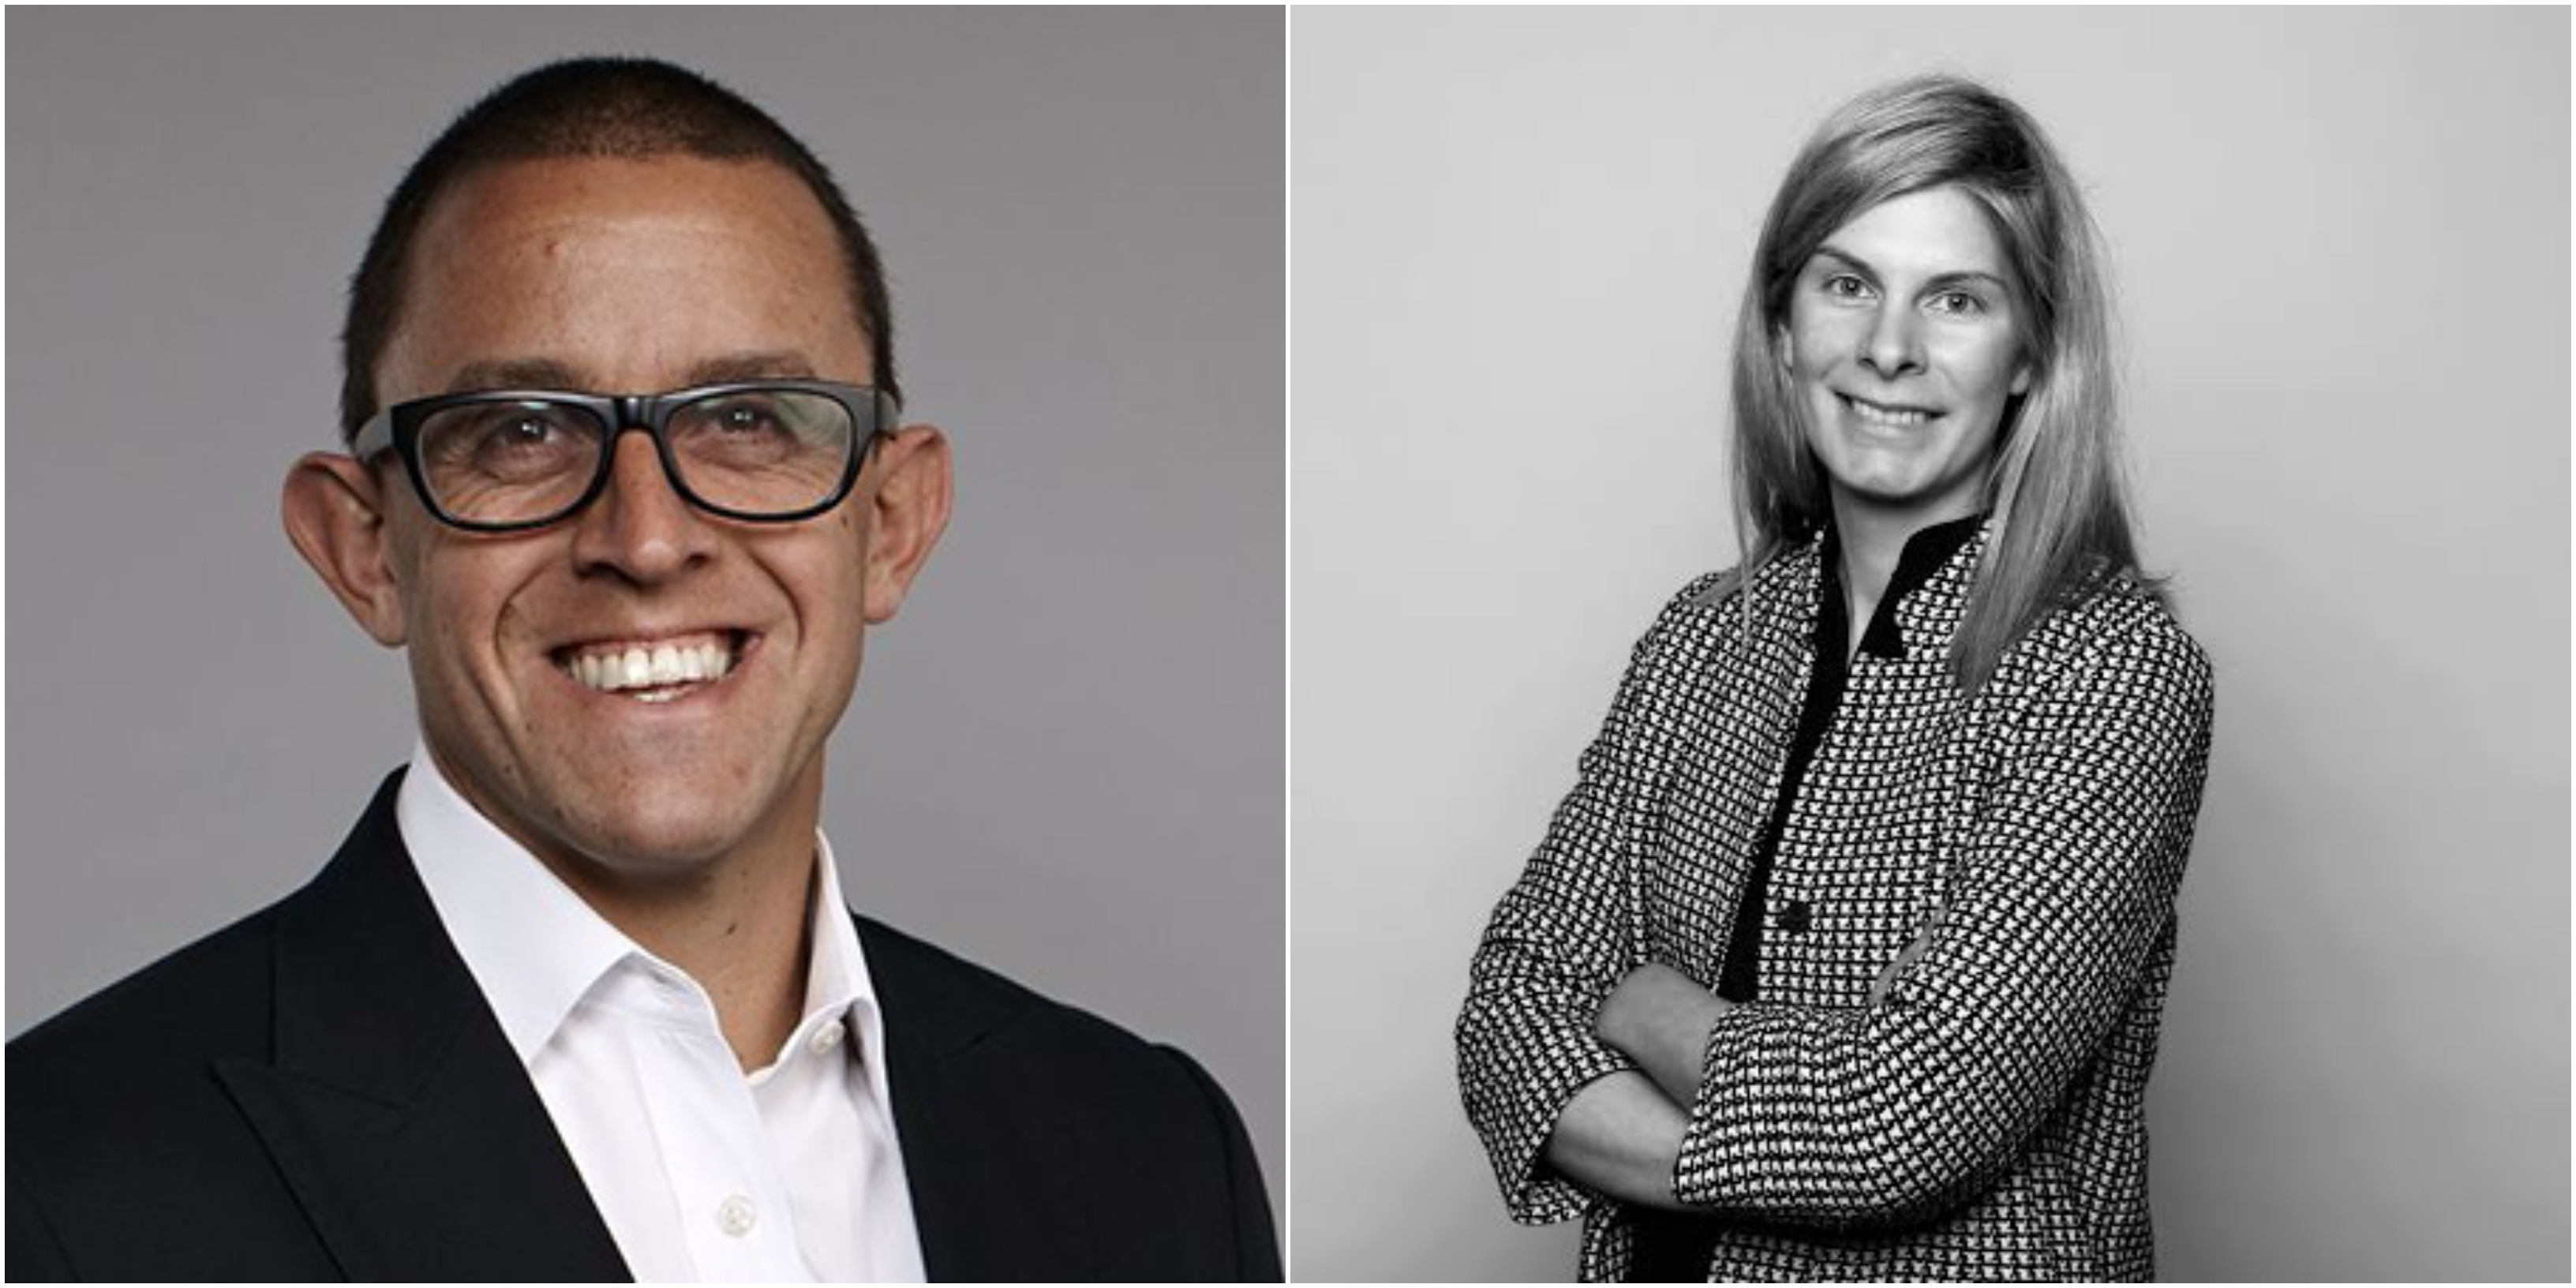 Dentsu Aegis Network ANZ CEO Henry Tajer departs agency; Angela Tangas to assume role